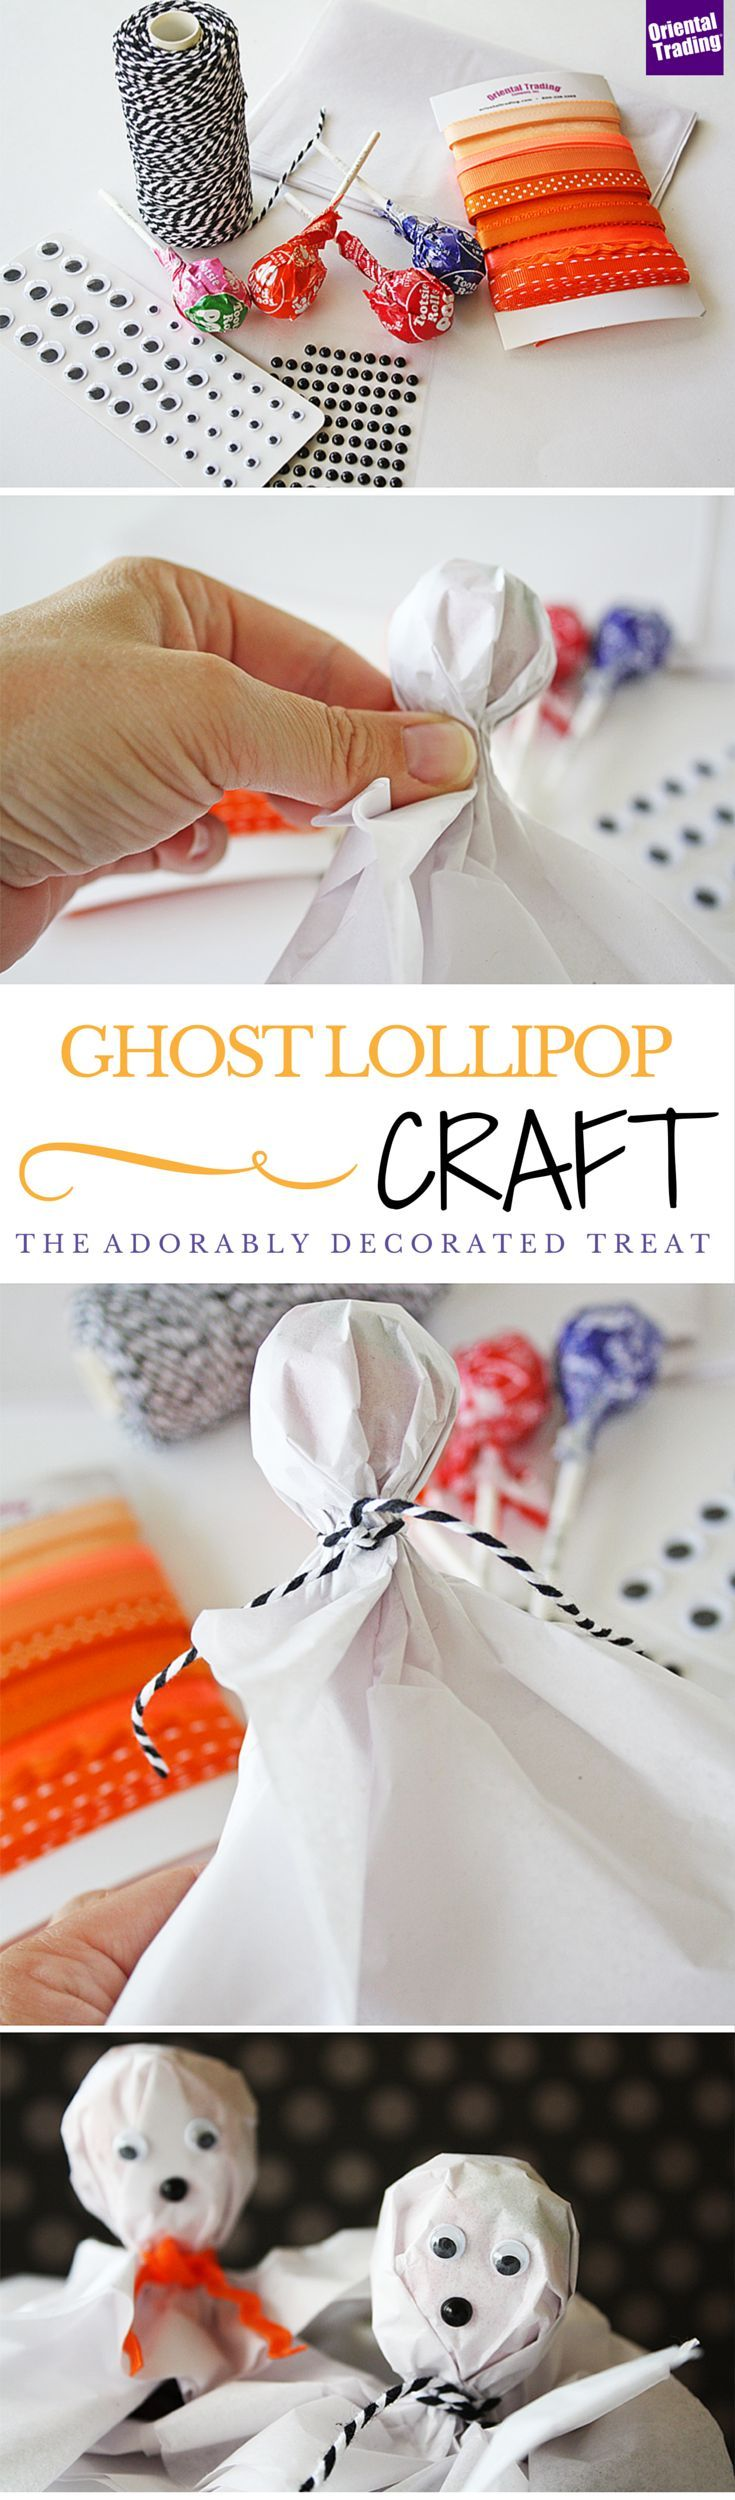 What kid wouldn't want an adorably decorated tootsie pop for Halloween? Make these quick and easy ghost tootsie pops for your kids to hand out on Halloween. Their classmates will be pleasantly surprised to have this spooky treat in their cubbies.